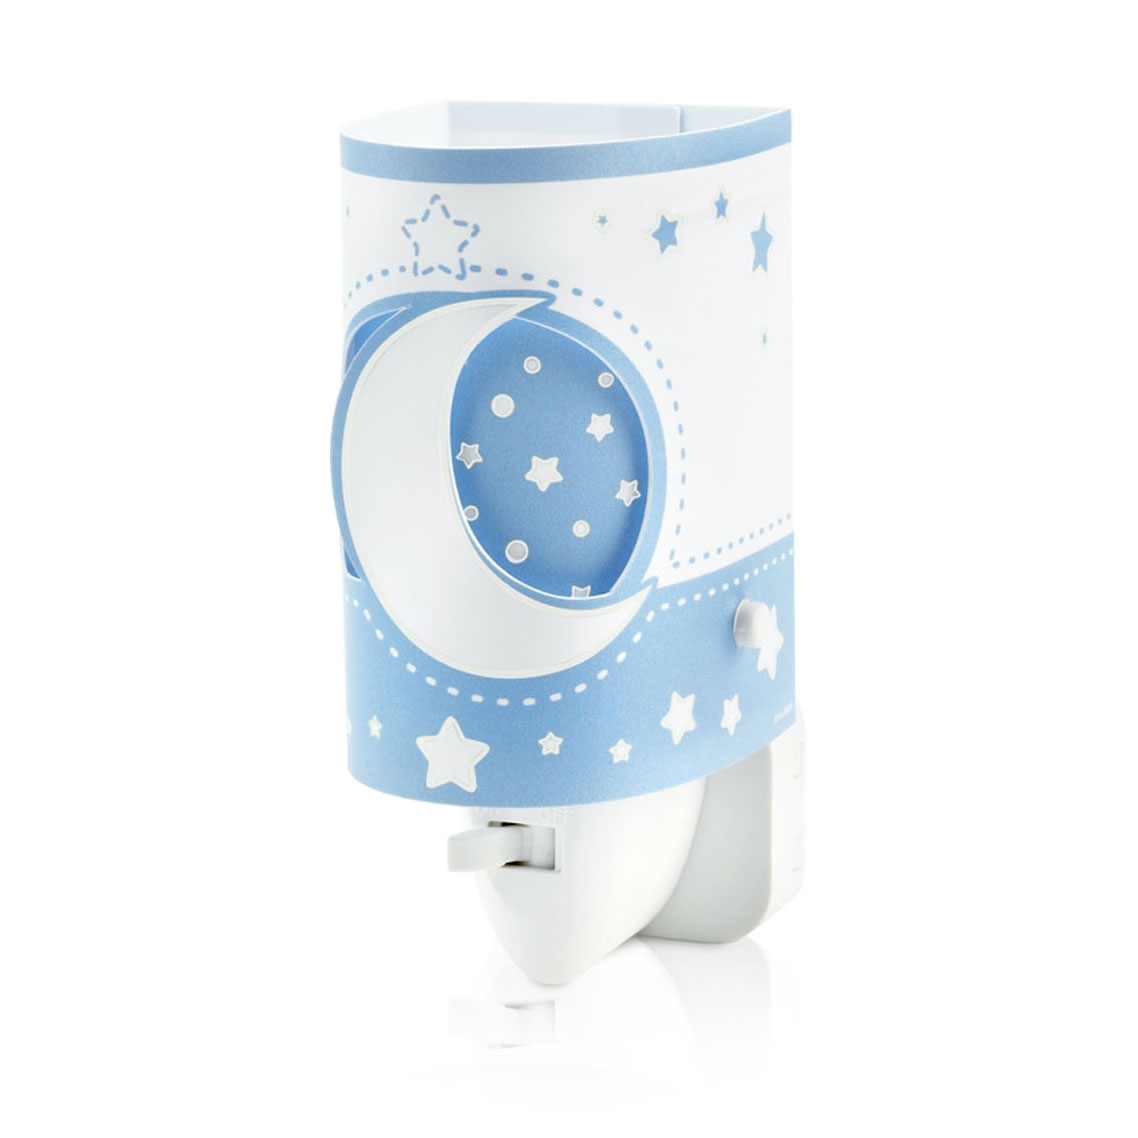 Dalber Nachtlamp LED Maanlicht Glow in the Dark Blauw